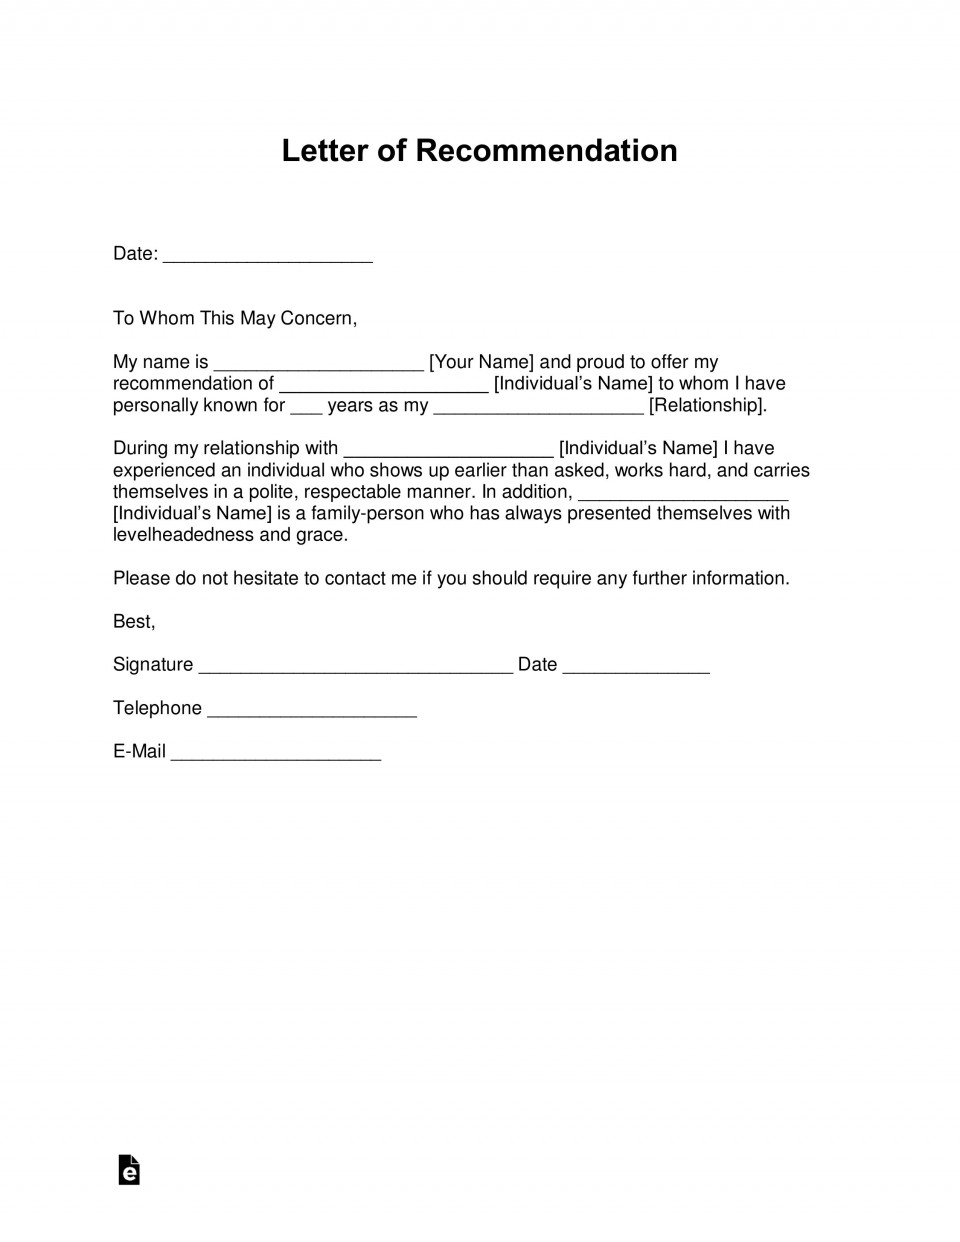 008 Outstanding Letter Of Recomendation Template Picture  Reference For Employment Sample Recommendation Teacher Student From Employer960